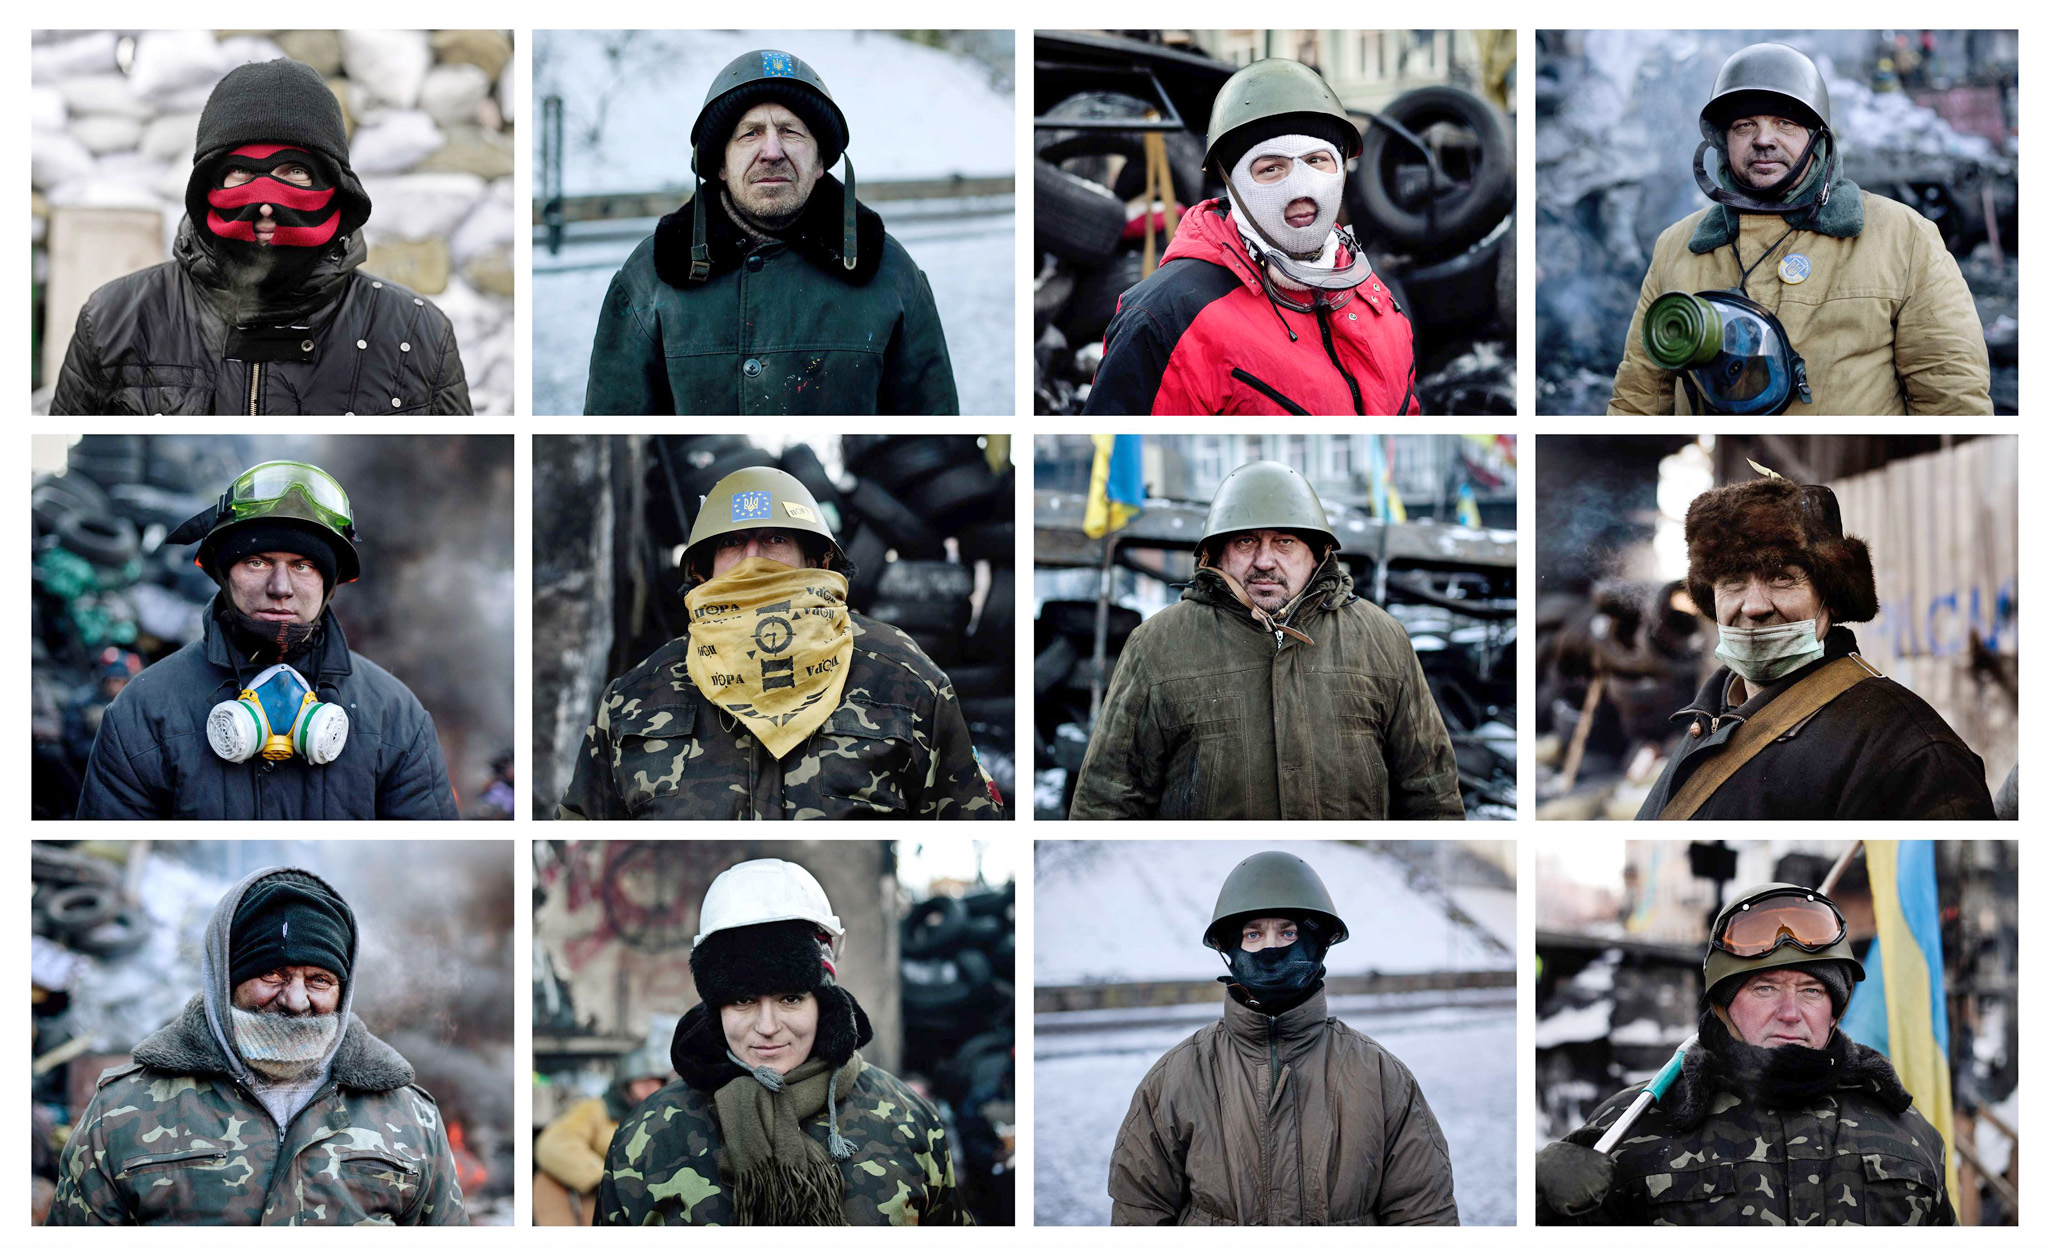 A combination of 16 photos shows portrai...A combination of 16 photos shows portraits of anti-government protesters standing at a road block in Kiev on January 31, 2014. President Viktor Yanukovych on January 30 accused the opposition of inflaming tensions in Ukraine's crisis but also admitted for the first time that the authorities had made mistakes. The opposition has refused to end street protests despite the passing of the amnesty for protesters arrested in the two-month crisis. AFP PHOTO / ARIS MESSINIS / ANGELOS TZORTZINISARIS MESSINIS,ANGELOS TZORTZINIS/AFP/Getty Images